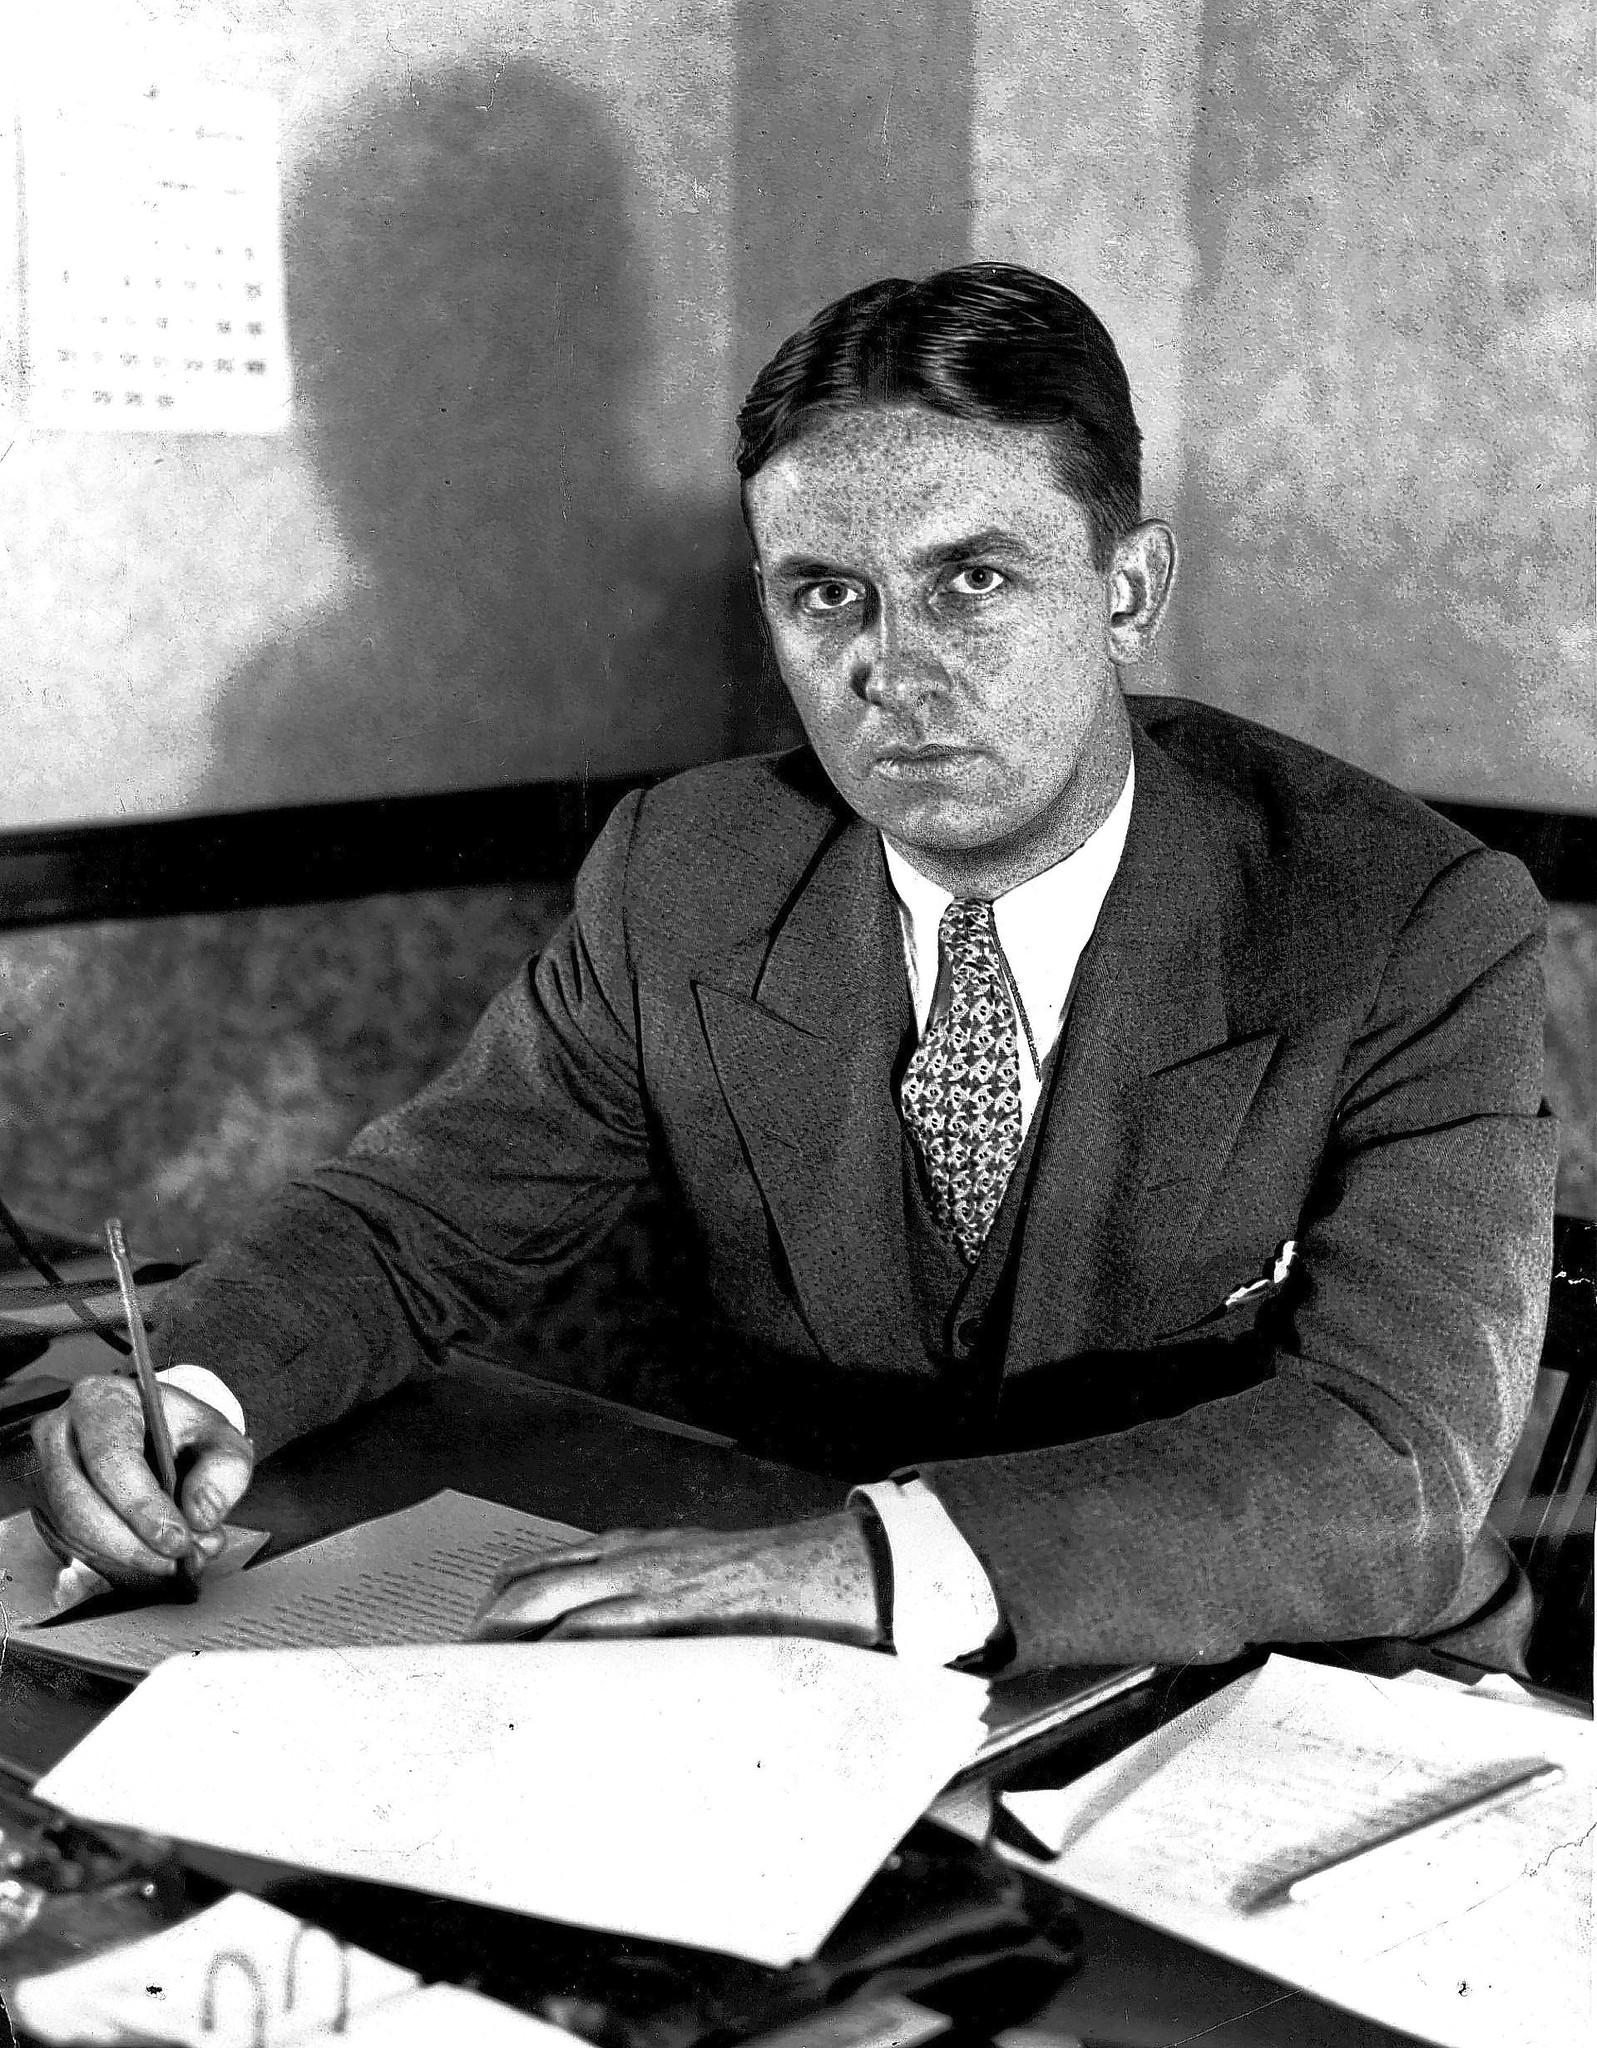 File photo of federal agent Eliot Ness.